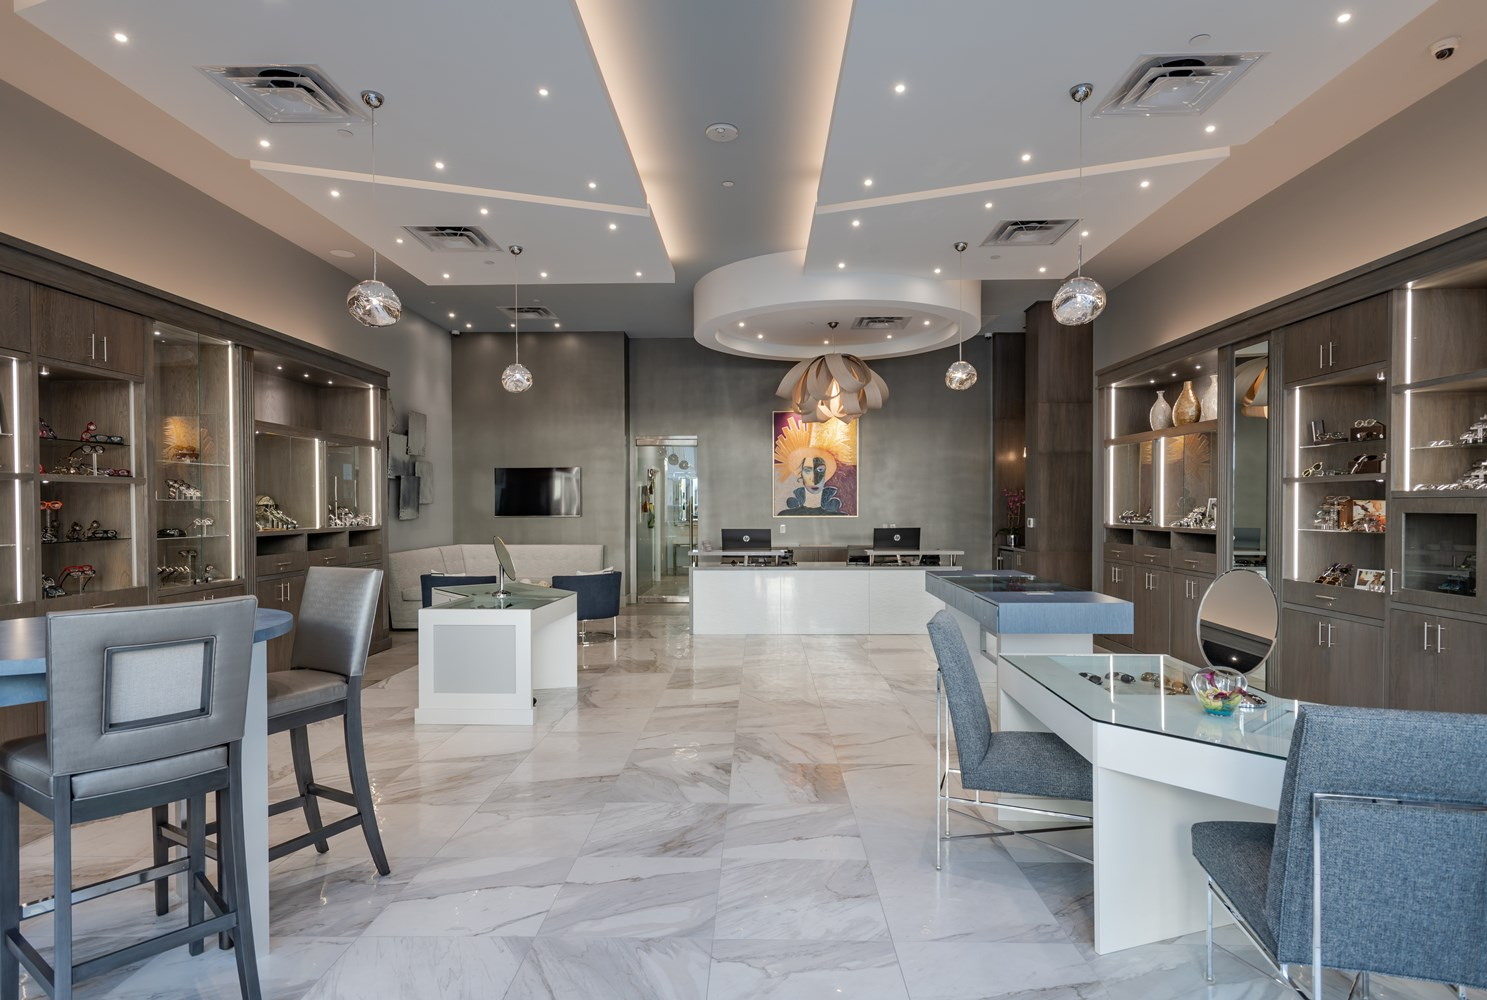 Remodeling realities how to choose flooring barbara - How to be an interior designer ...